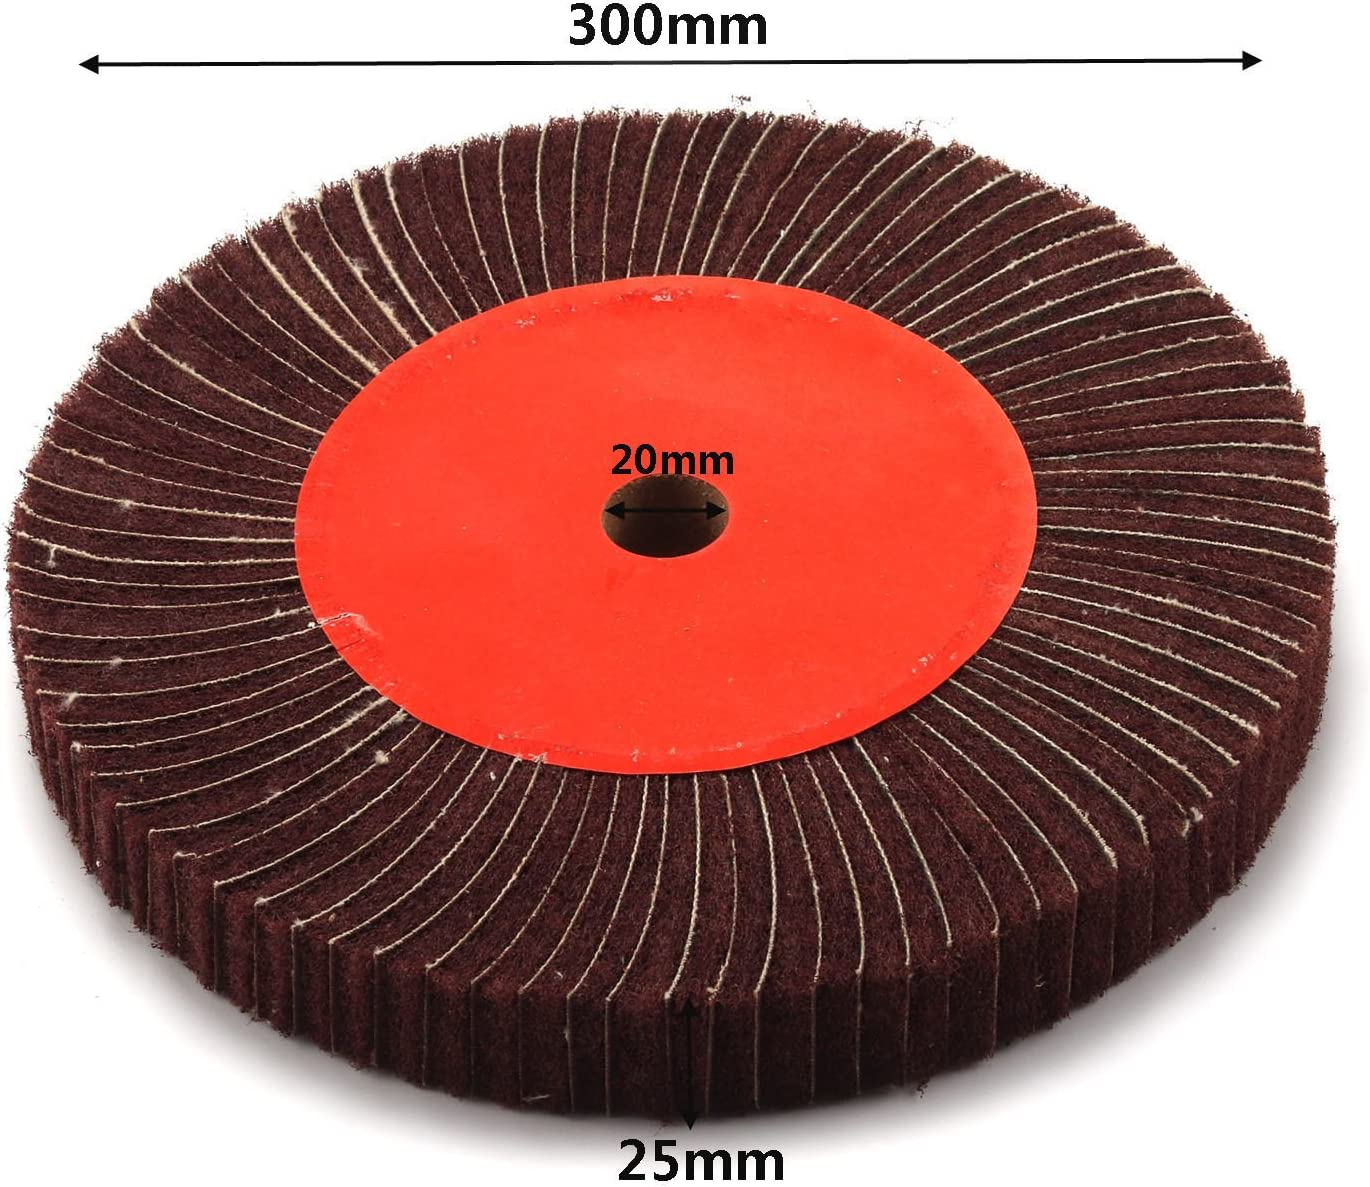 6inch Non-Woven Abrasive Grinding Flap Wheel Nylon Fiber Wheel Scouring Buffing Pad for Rotary Tool 1inch Thickness 120 Grit Green